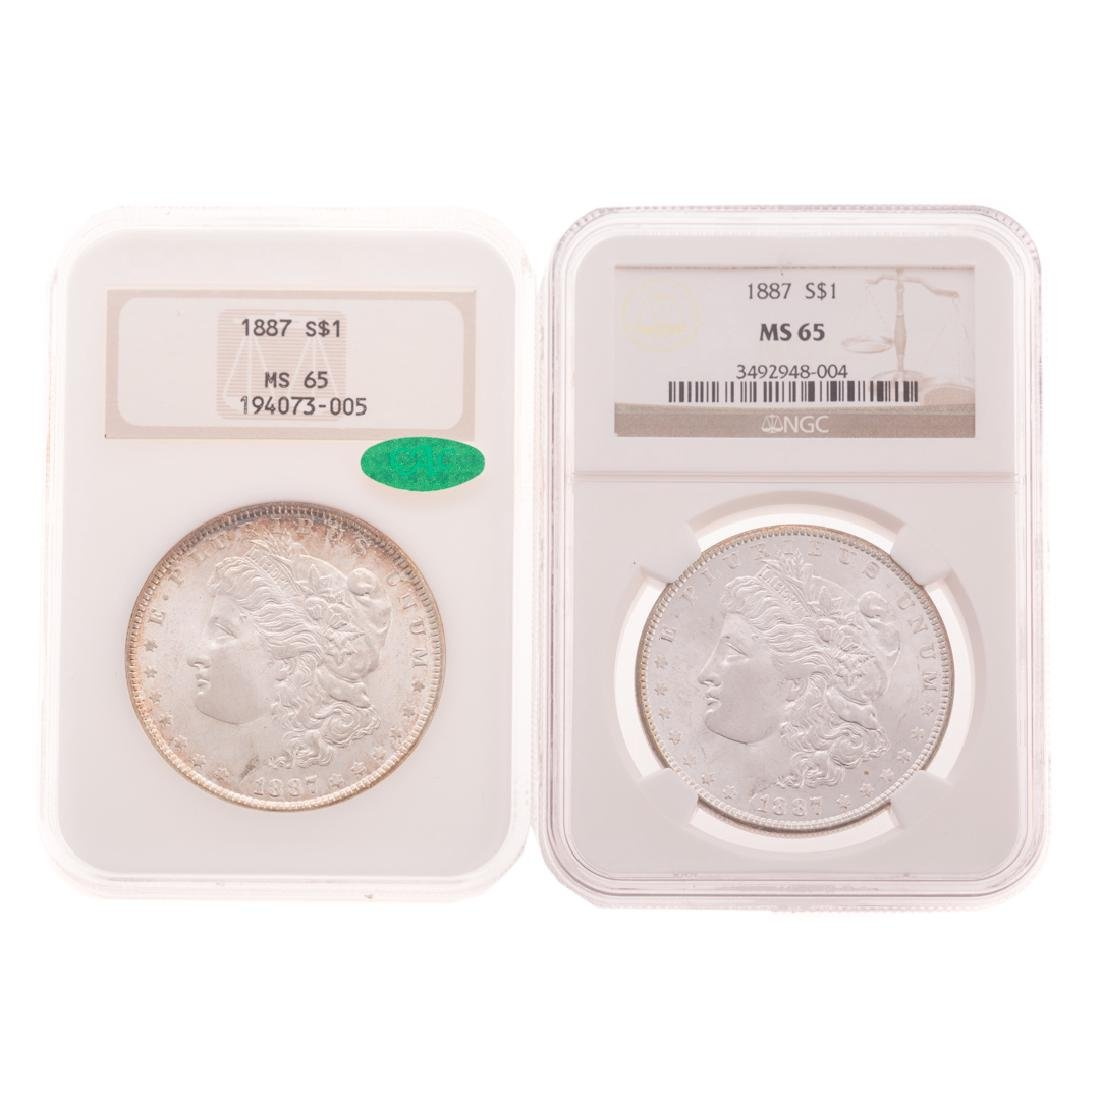 [US] 2-1887 NGC-MS65 Morgans, 1 with CAC